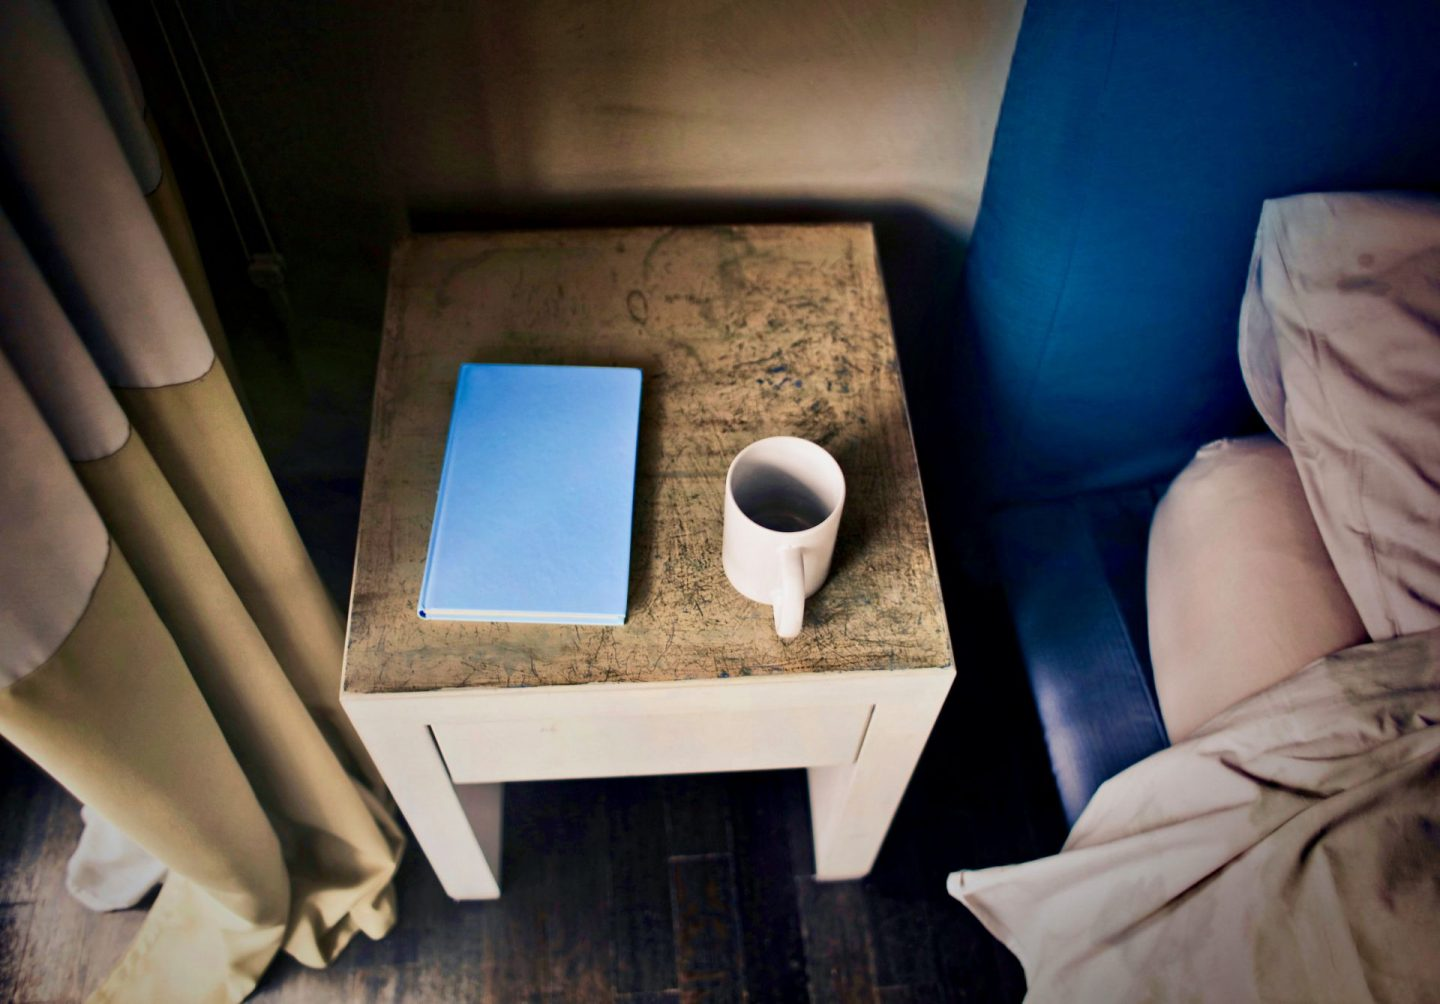 things to do at home when self-isolating bedside table with coffee and a book